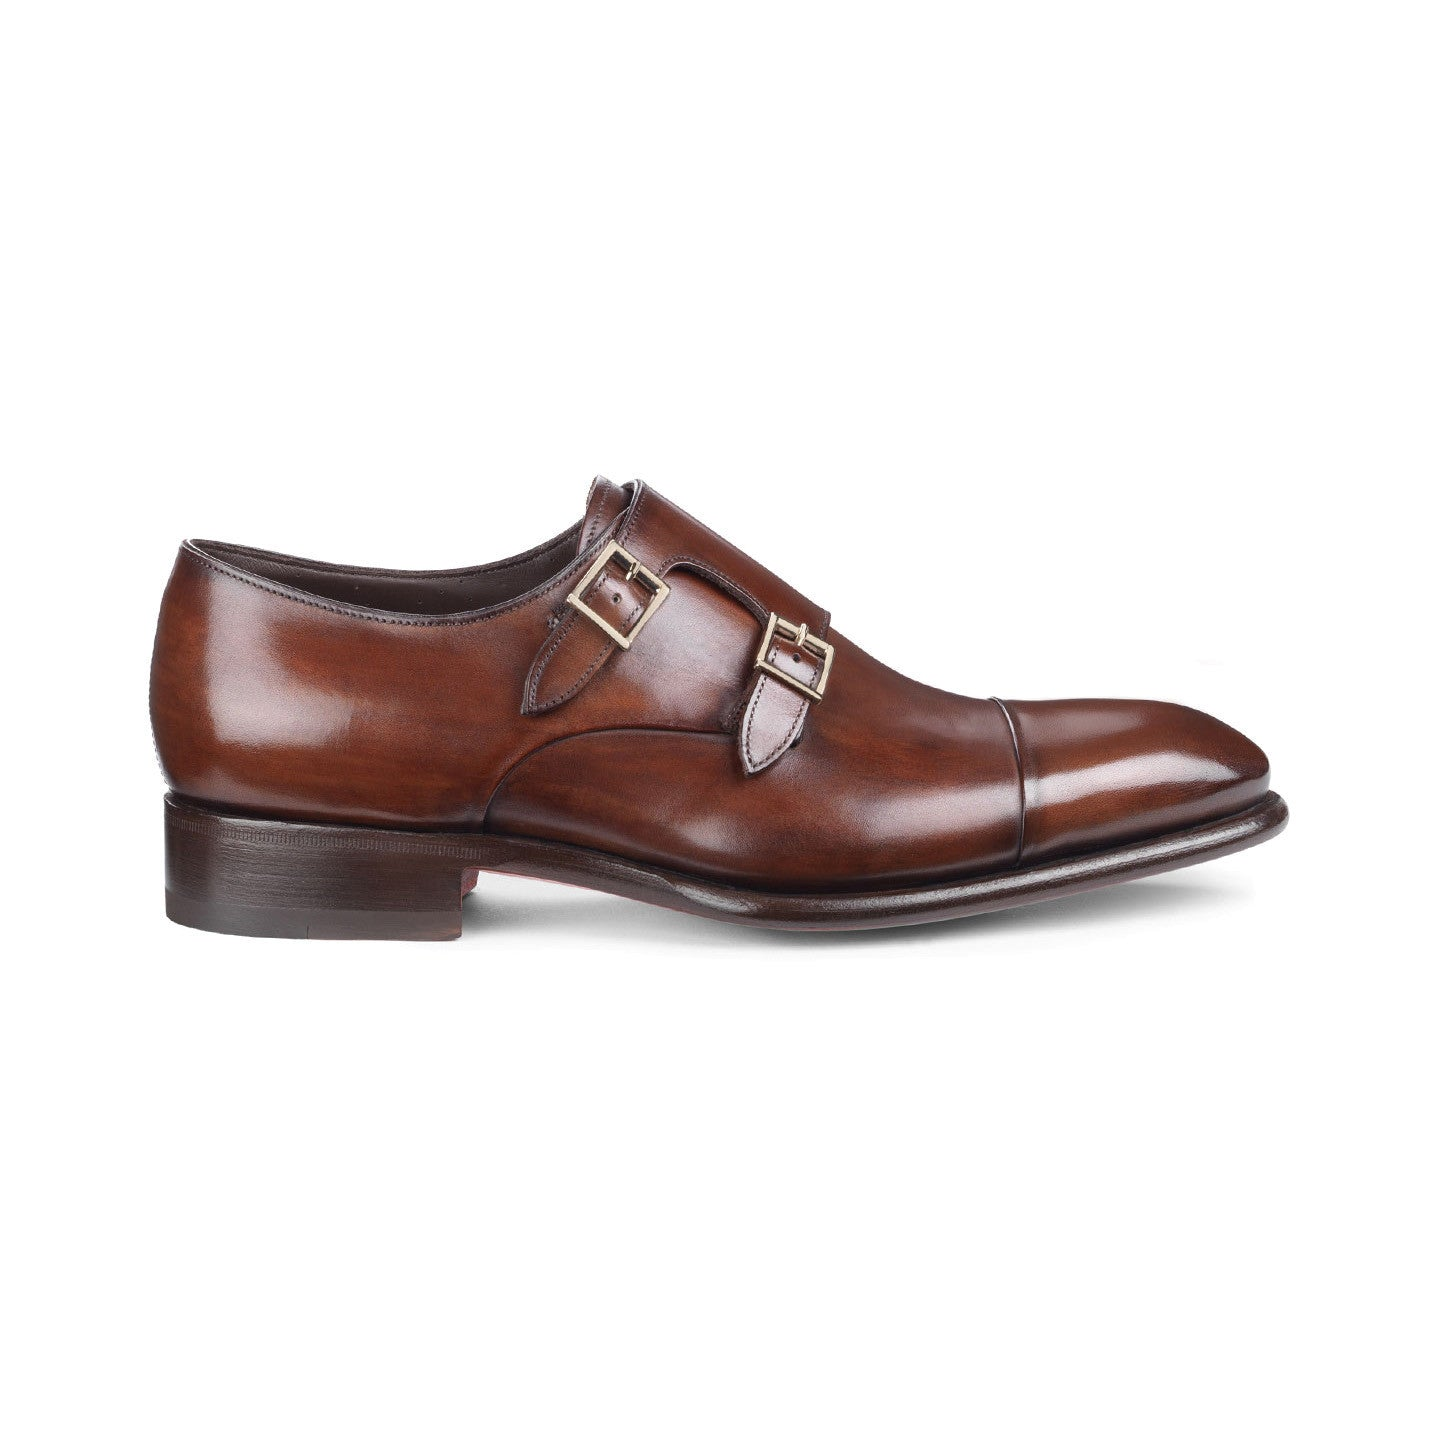 DOUBLE BUCKLE 11652,SHOES,SANTONI, | GentRow.com